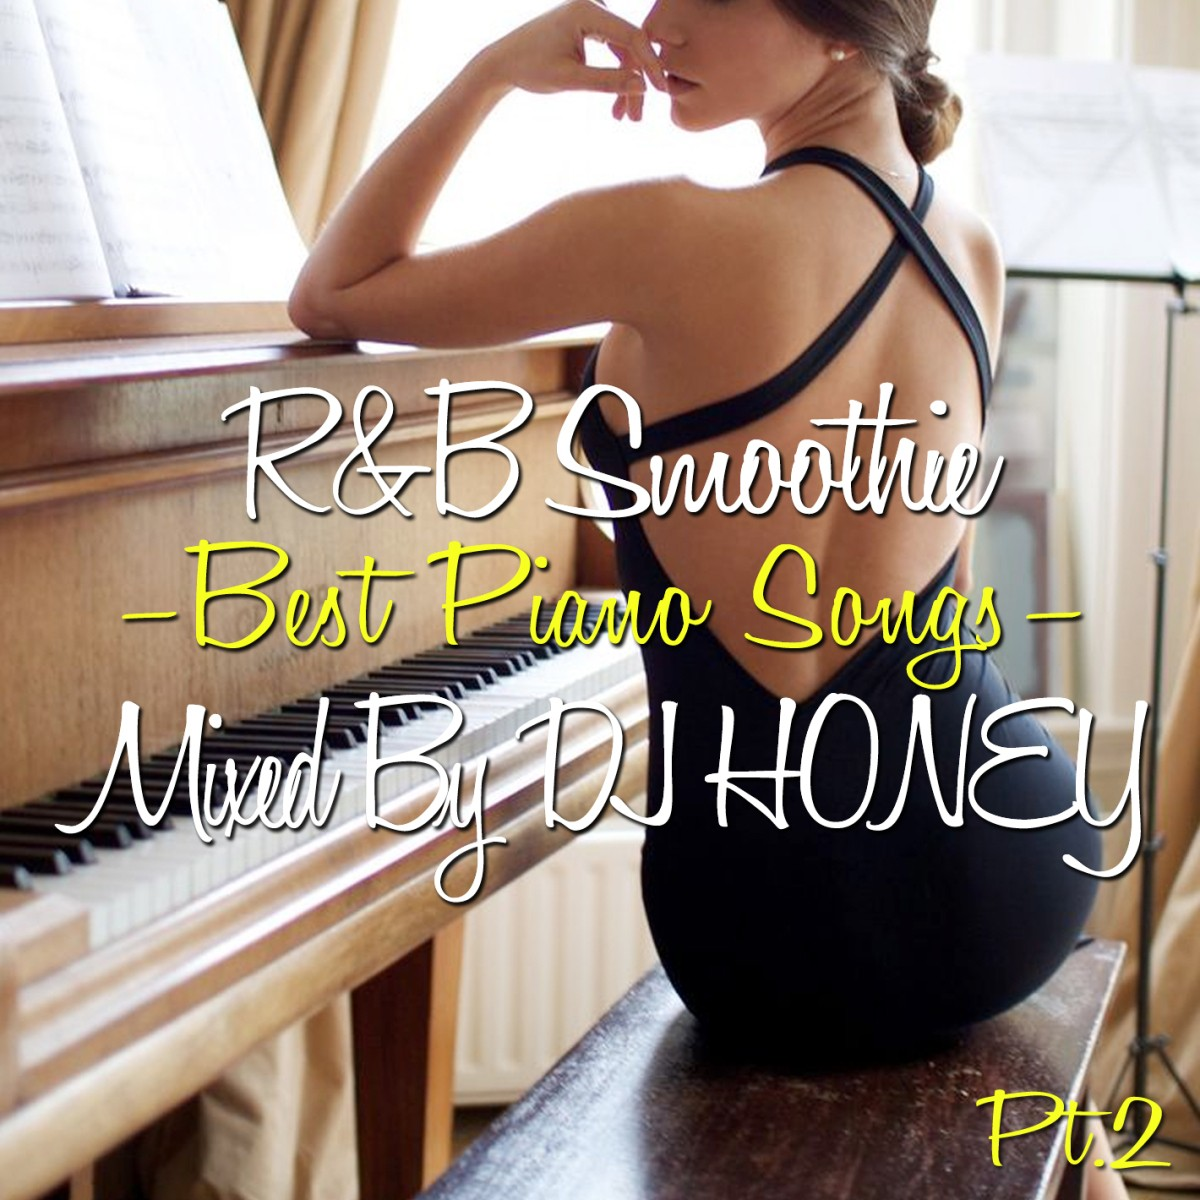 美しいピアノR&Bベスト!【洋楽CD・MixCD】R&B Smoothie -Best Piano Songs Pt.2- / DJ Honey【M便 2/12】